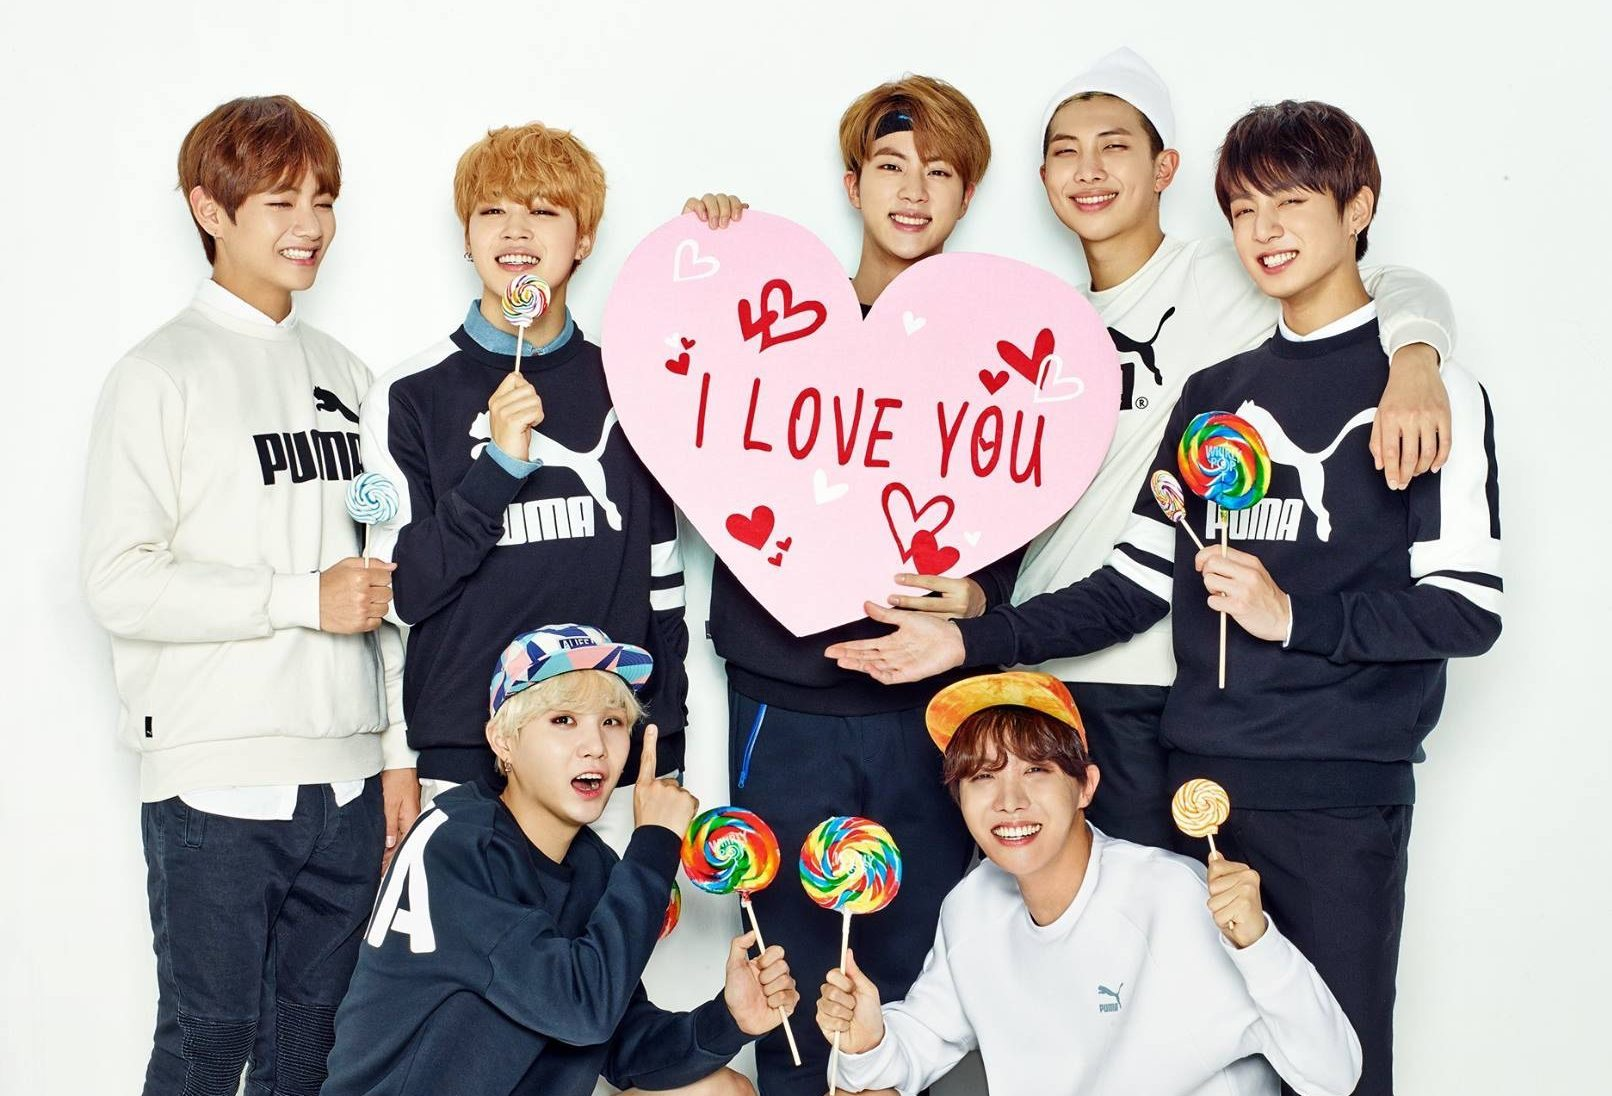 QUIZ: Which BTS Member Is The Most Attracted To You?